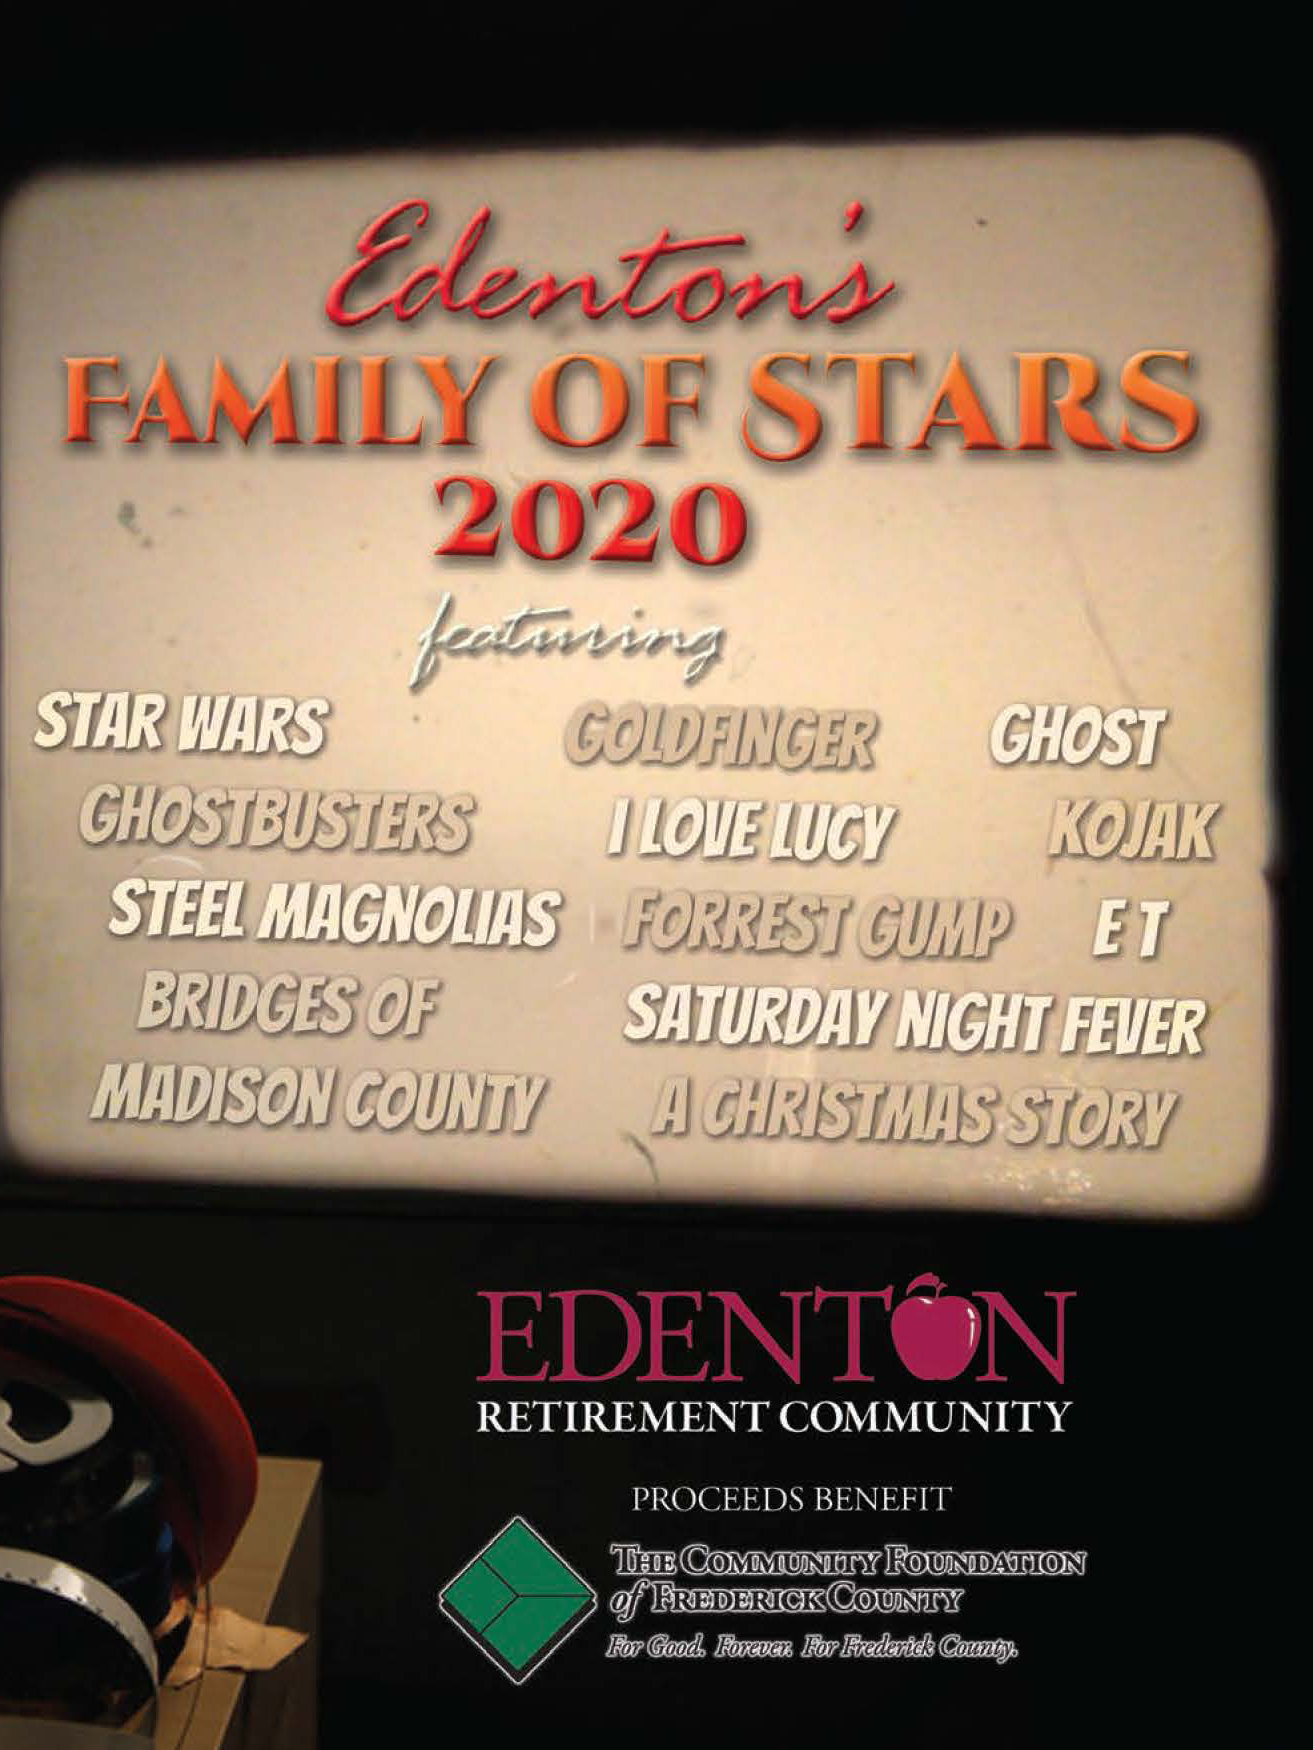 2020 Edenton Calendar of Stars Available!